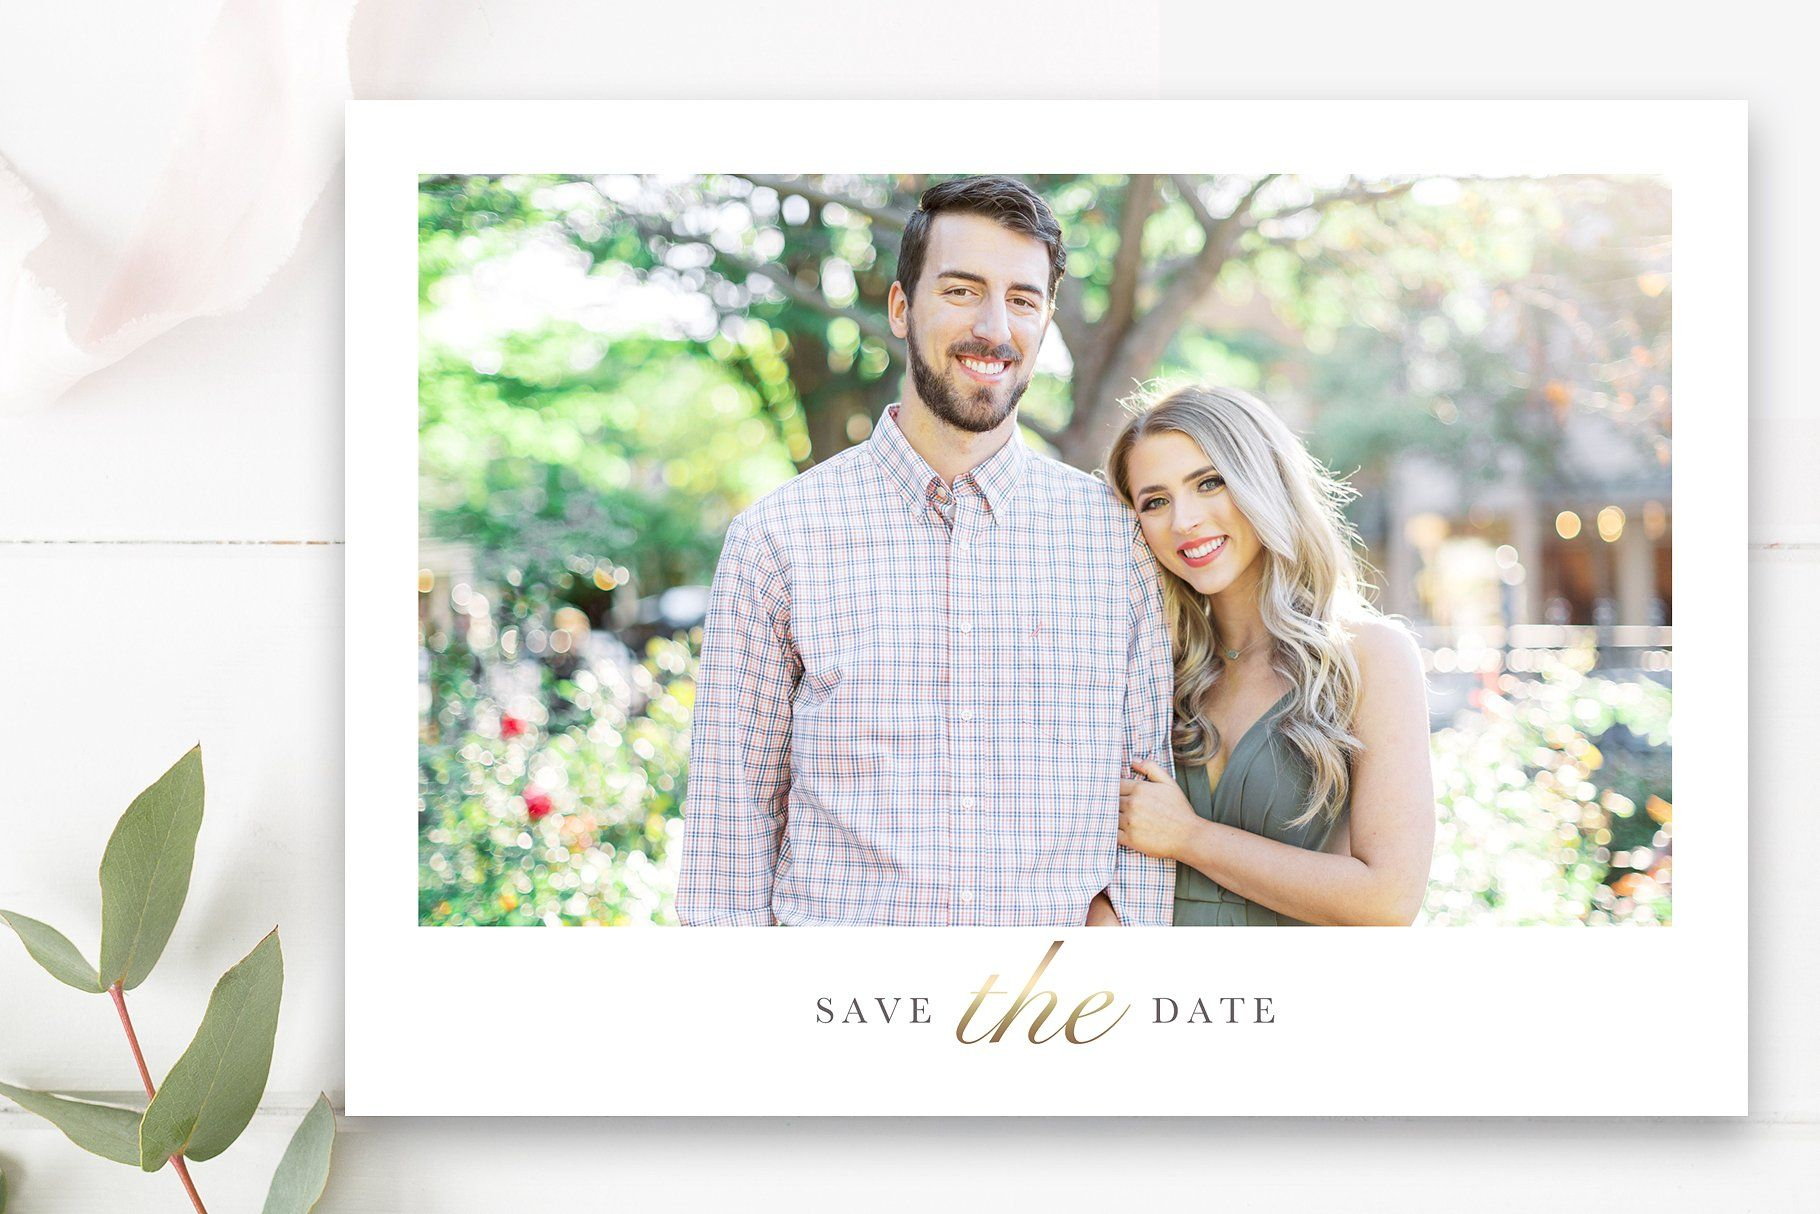 Calendar Save The Date Postcard Template 5x7 4x6 Templates Included By Stephanie Design Save The Date Templates Photoshop Template Design Photo Card Template